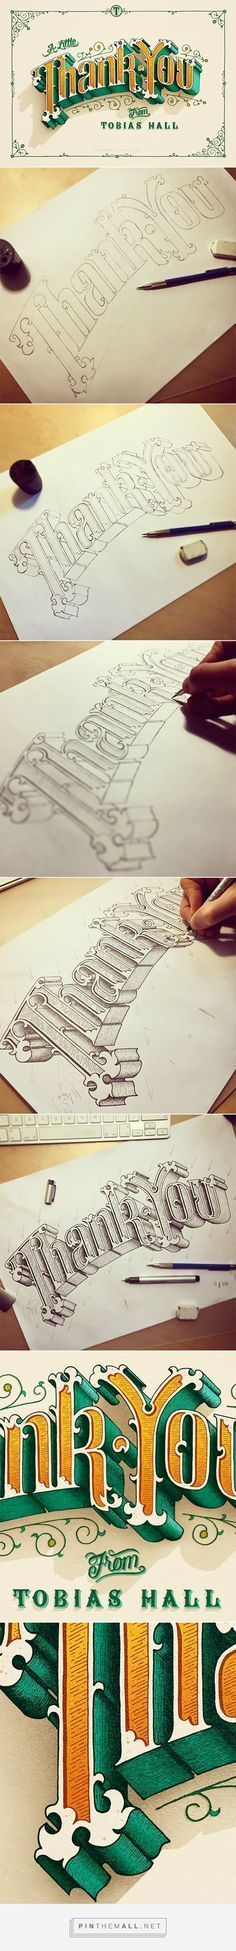 thank you - cool typography examples to inspire you